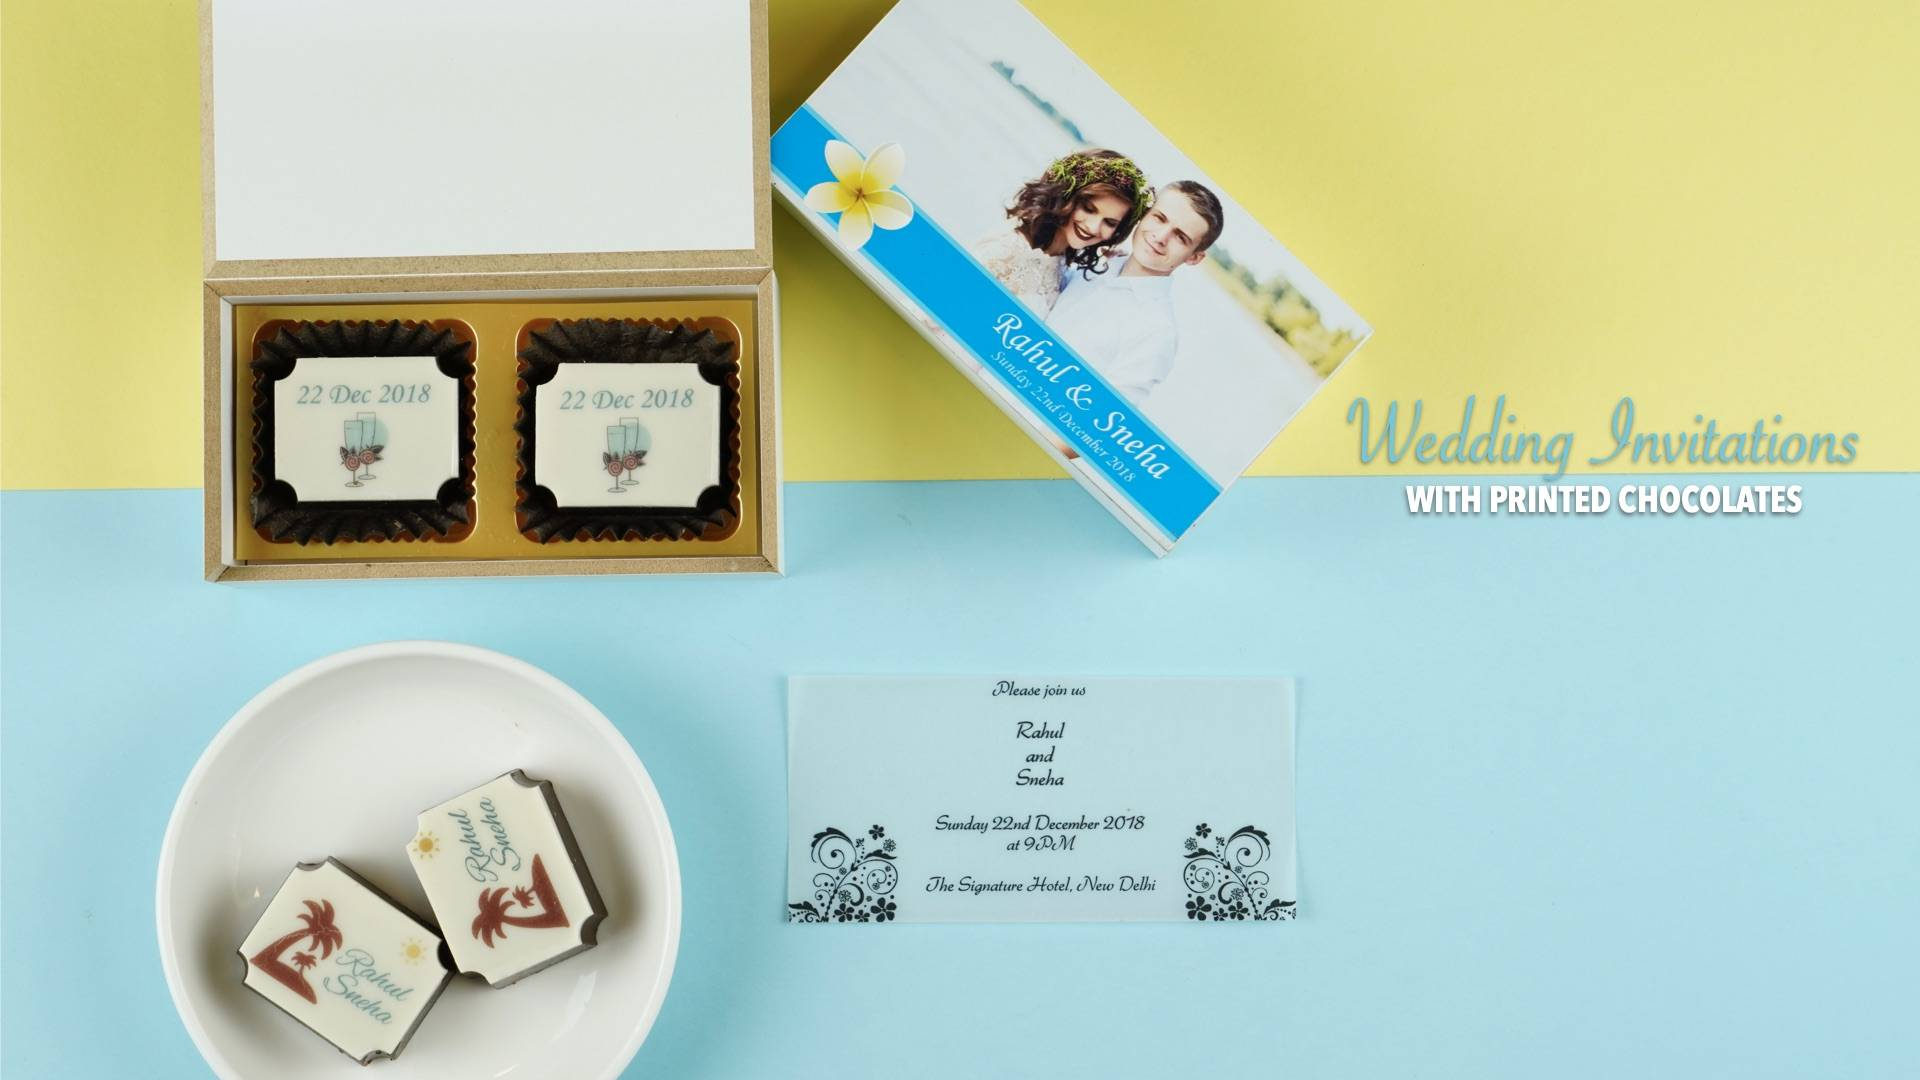 Wedding Invitations with chocolates